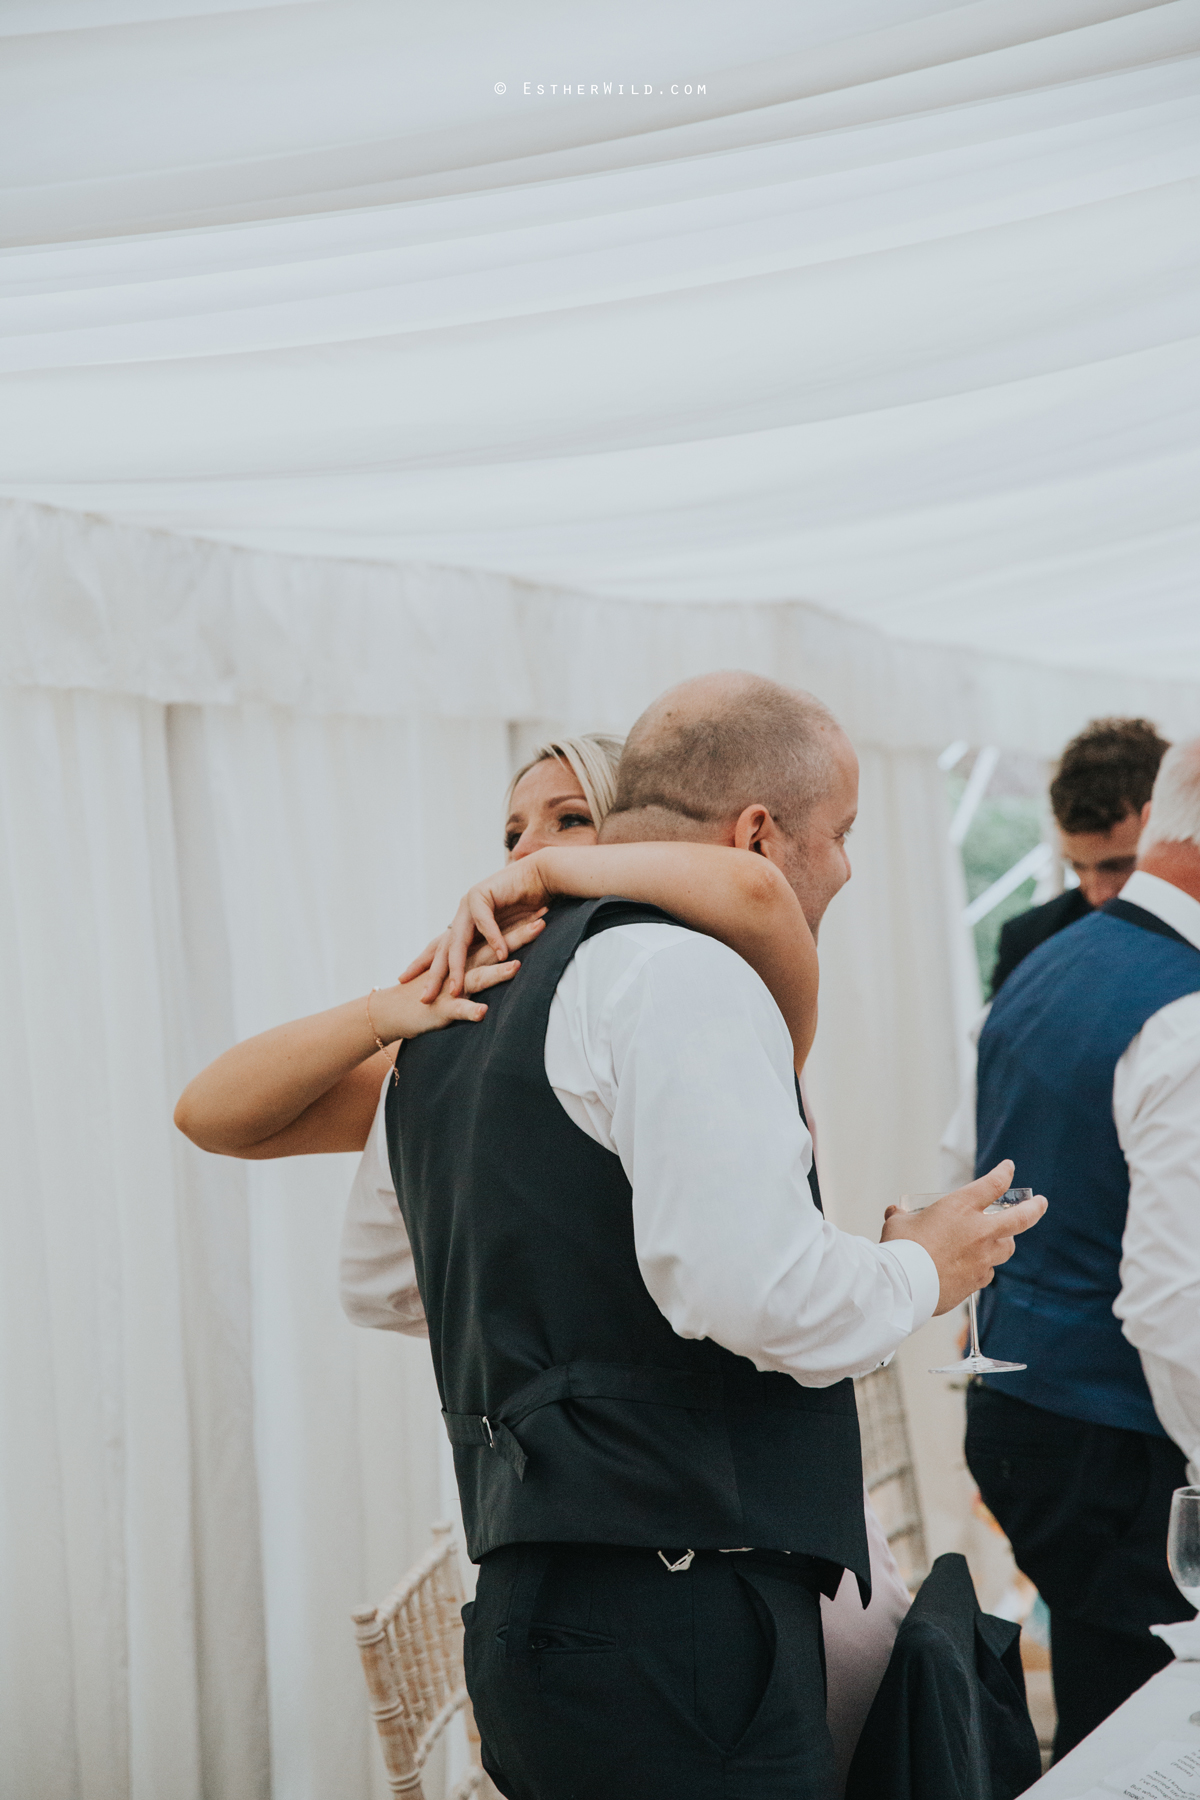 Wootton_Wedding_Copyright_Esther_Wild_Photographer_IMG_3015.jpg